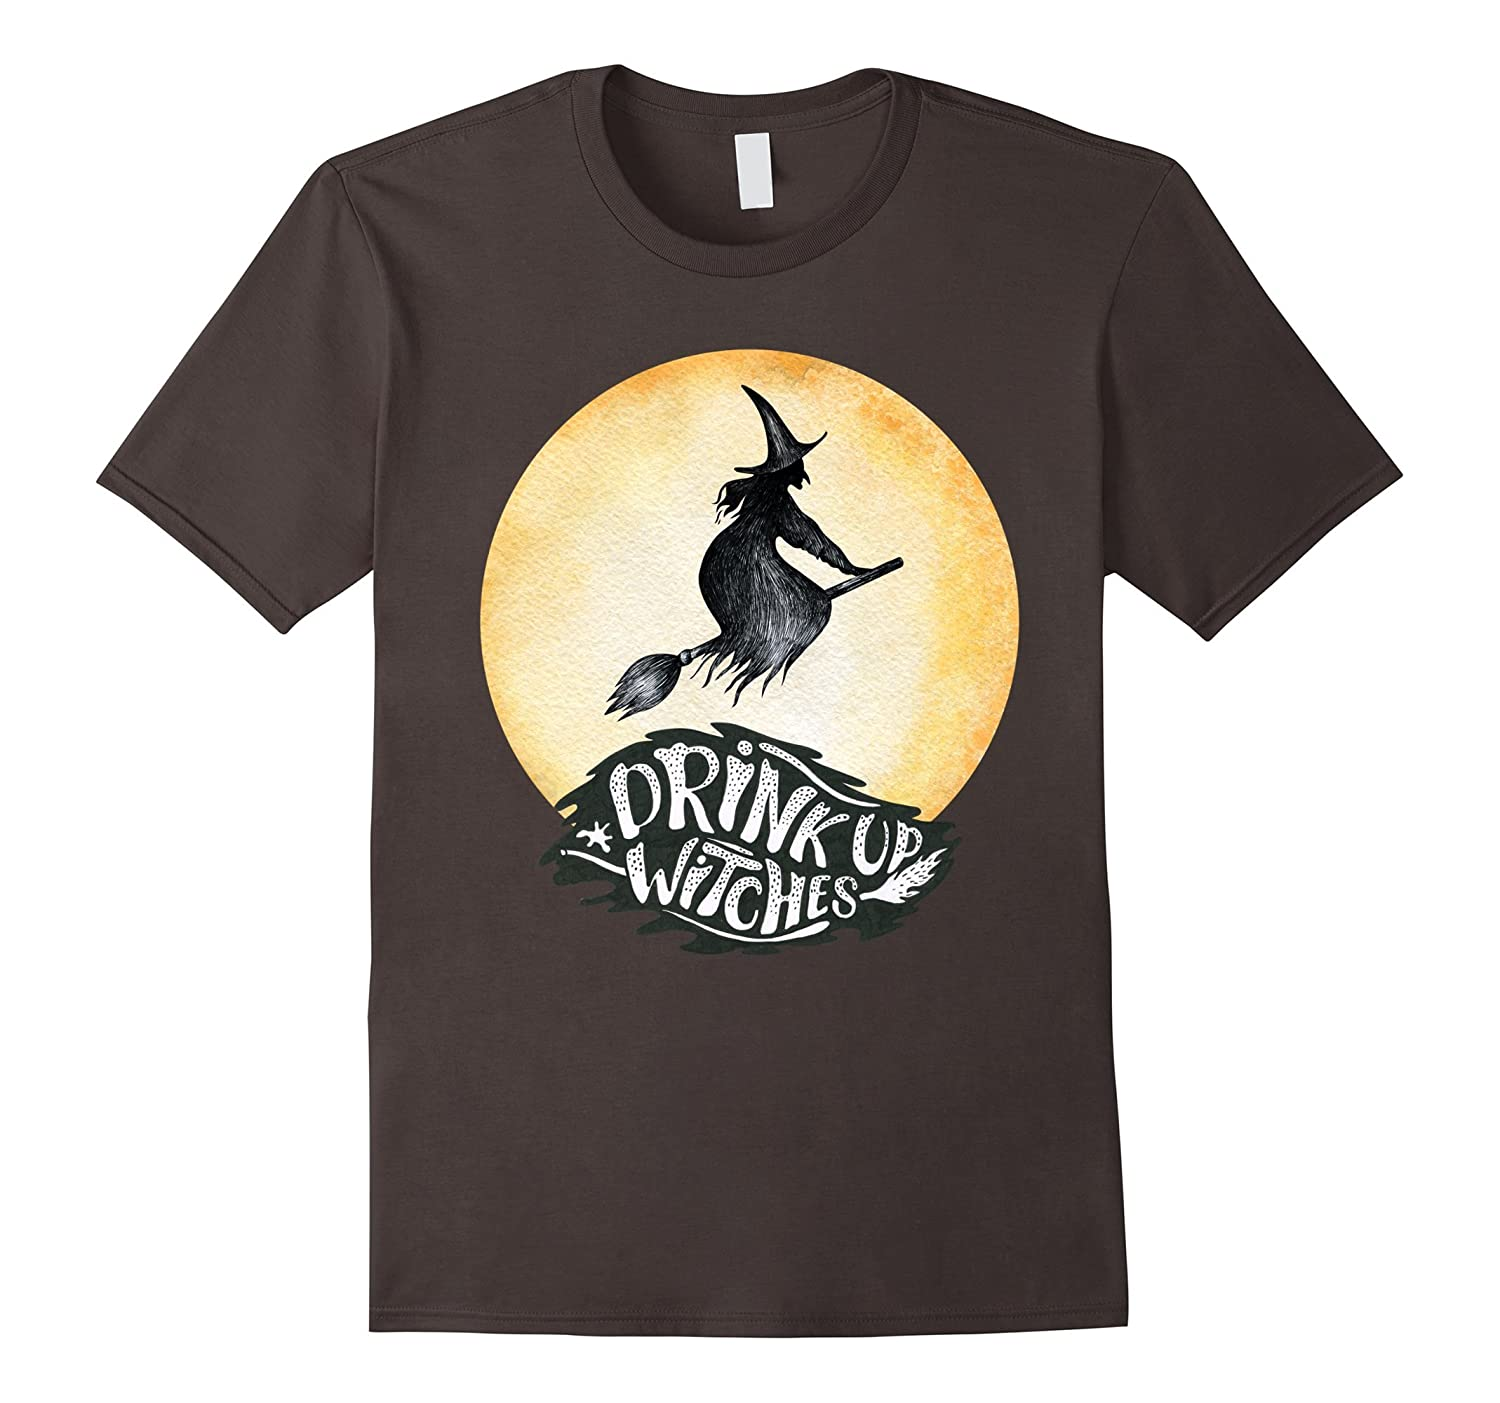 Halloween Night Drink Up Witches Trick or Treat T-Shirt